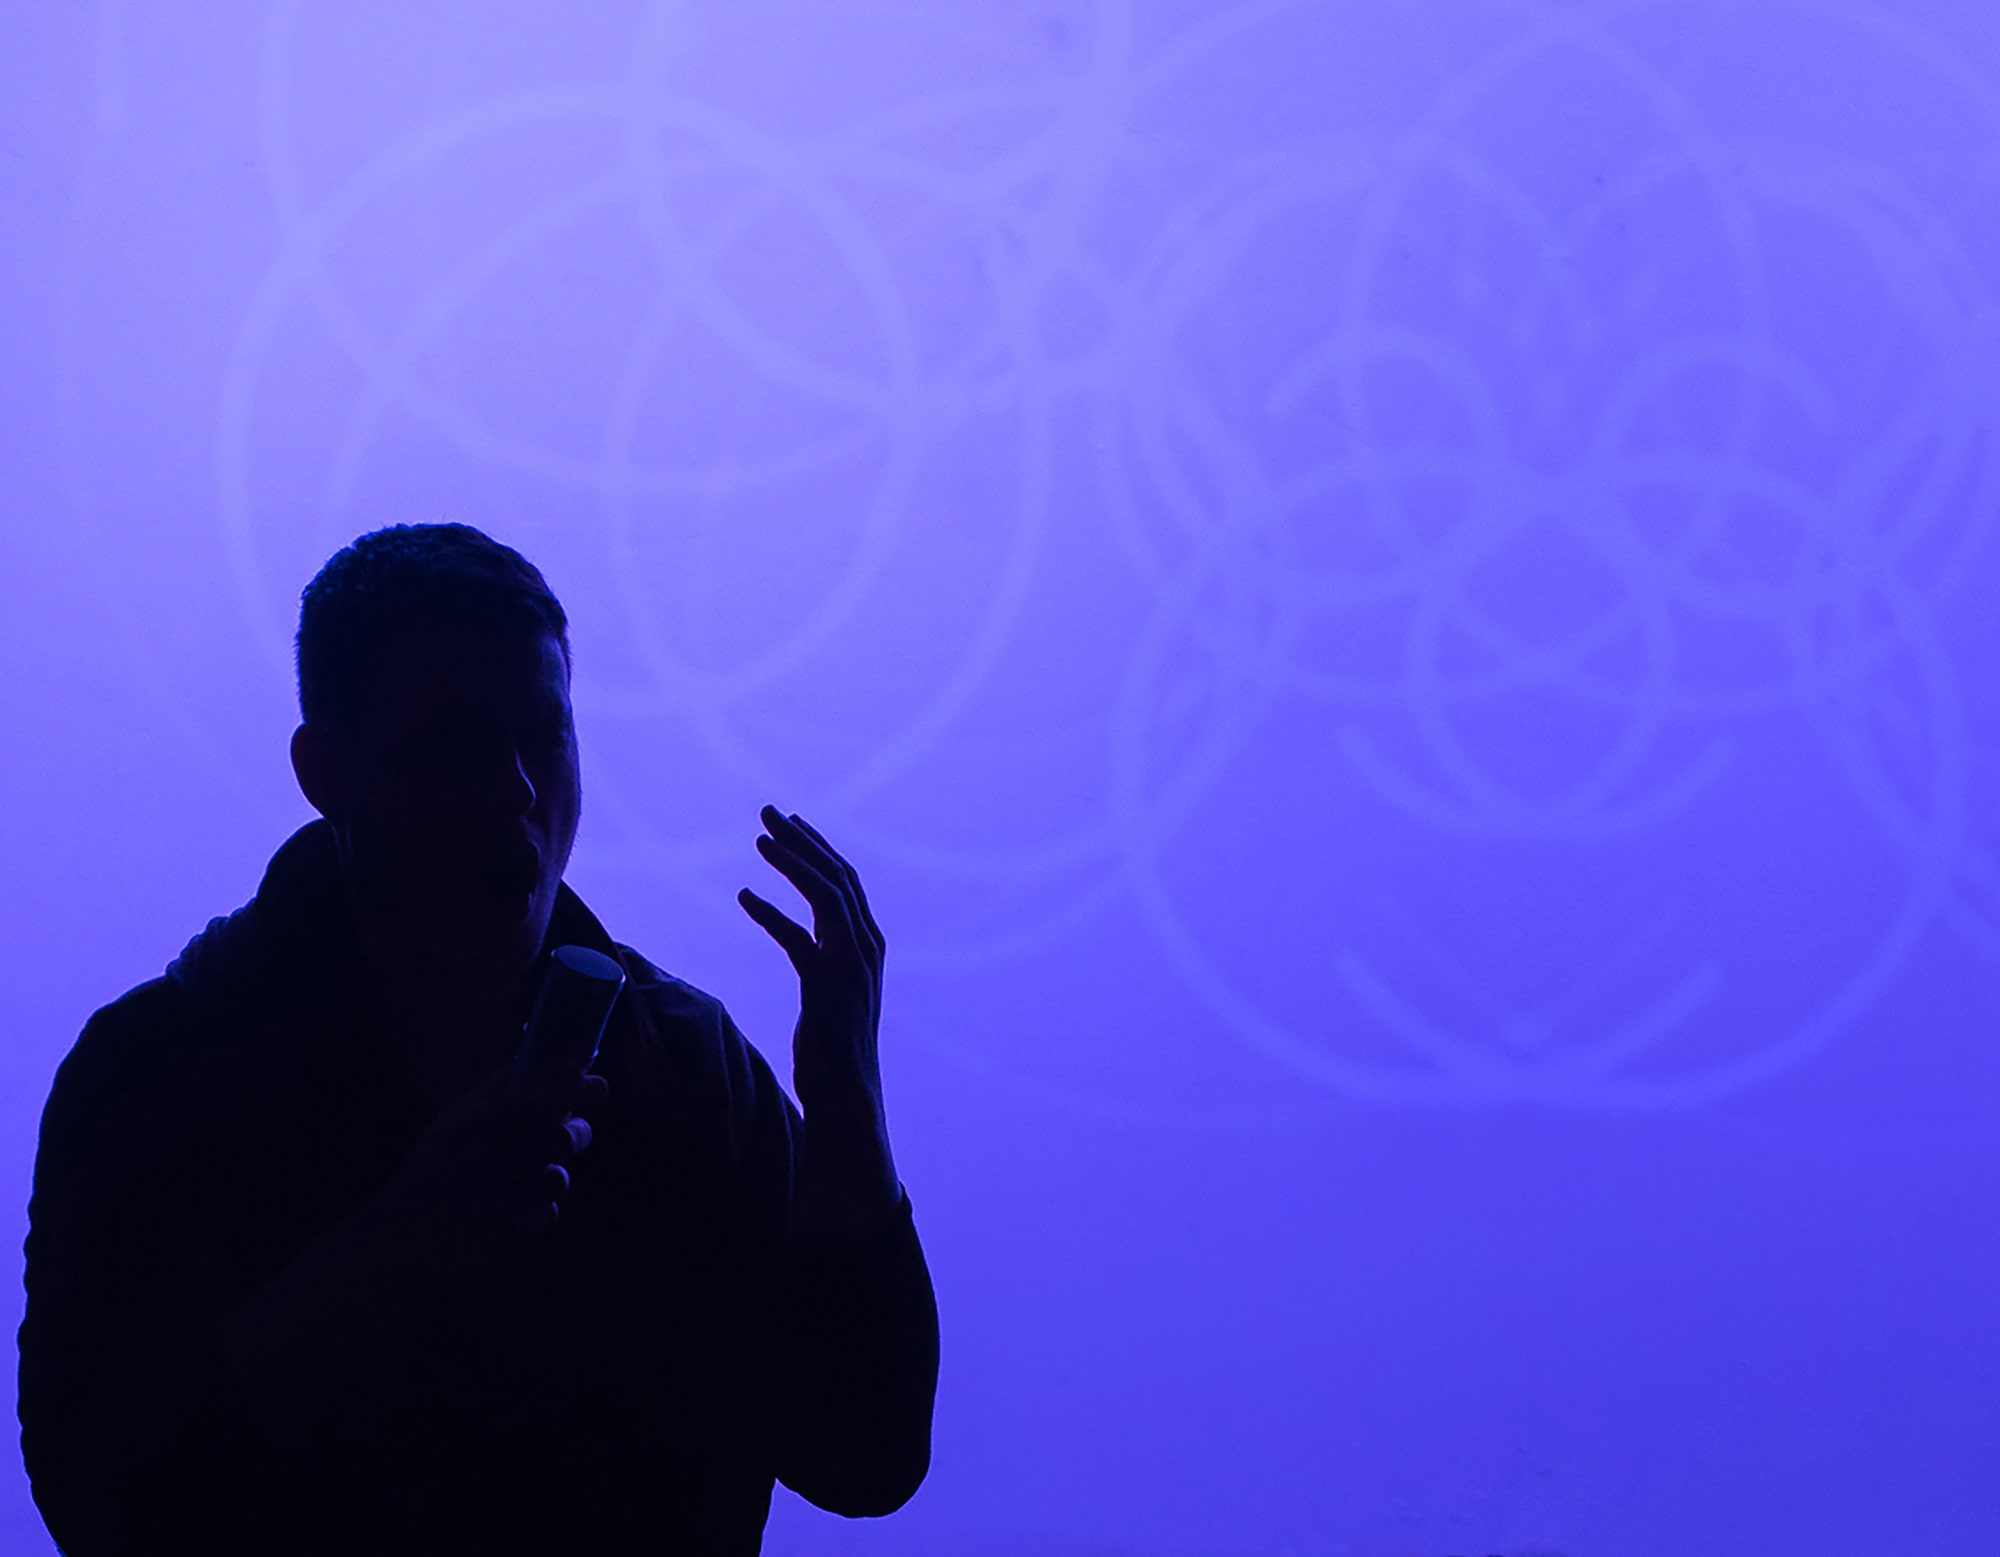 Randy Gibson singing *Apparitions of The Four Pillars in The Midwinter Starfield Symmetry under The 72:81:88 Confluence* in a setting of *Quadrilateral Starfield Symmetry A:L Base 11:273 in The 181 Profusion* at the 2016 Avant Music Festival